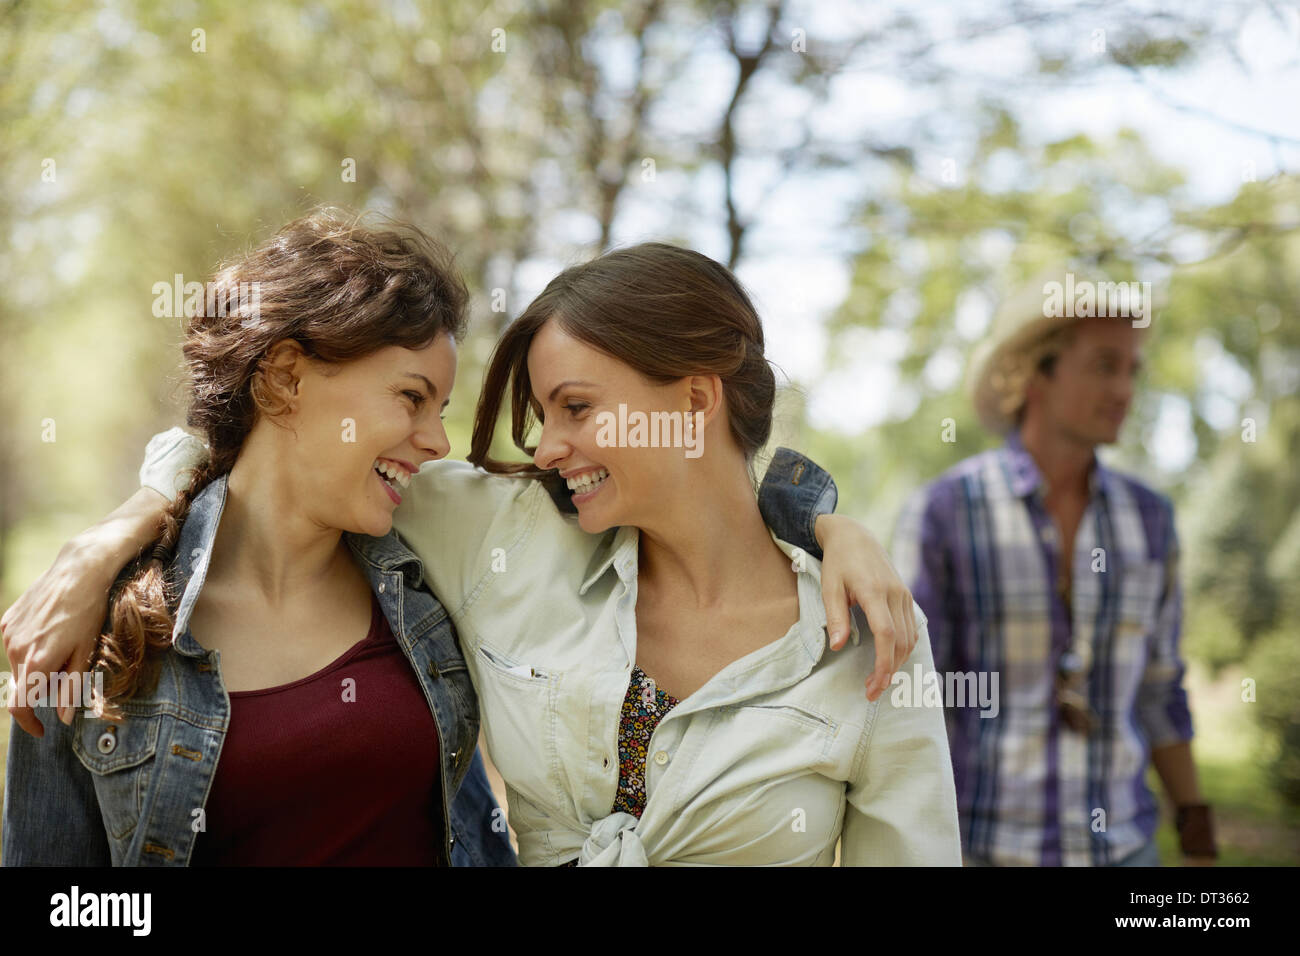 Deux amis smiling at each other Photo Stock